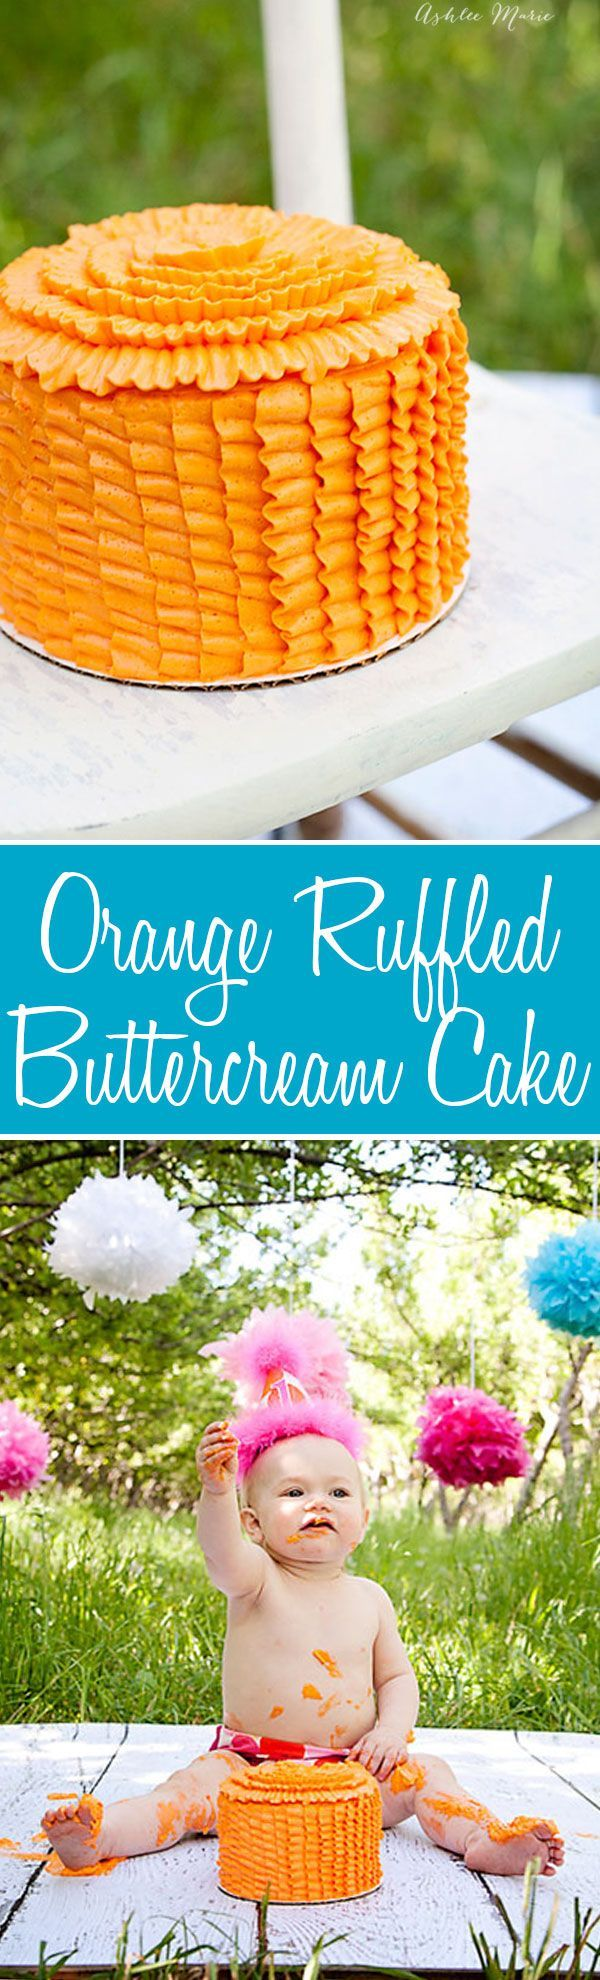 79 best Buttercream Cakes and Smash Cakes images on Pinterest